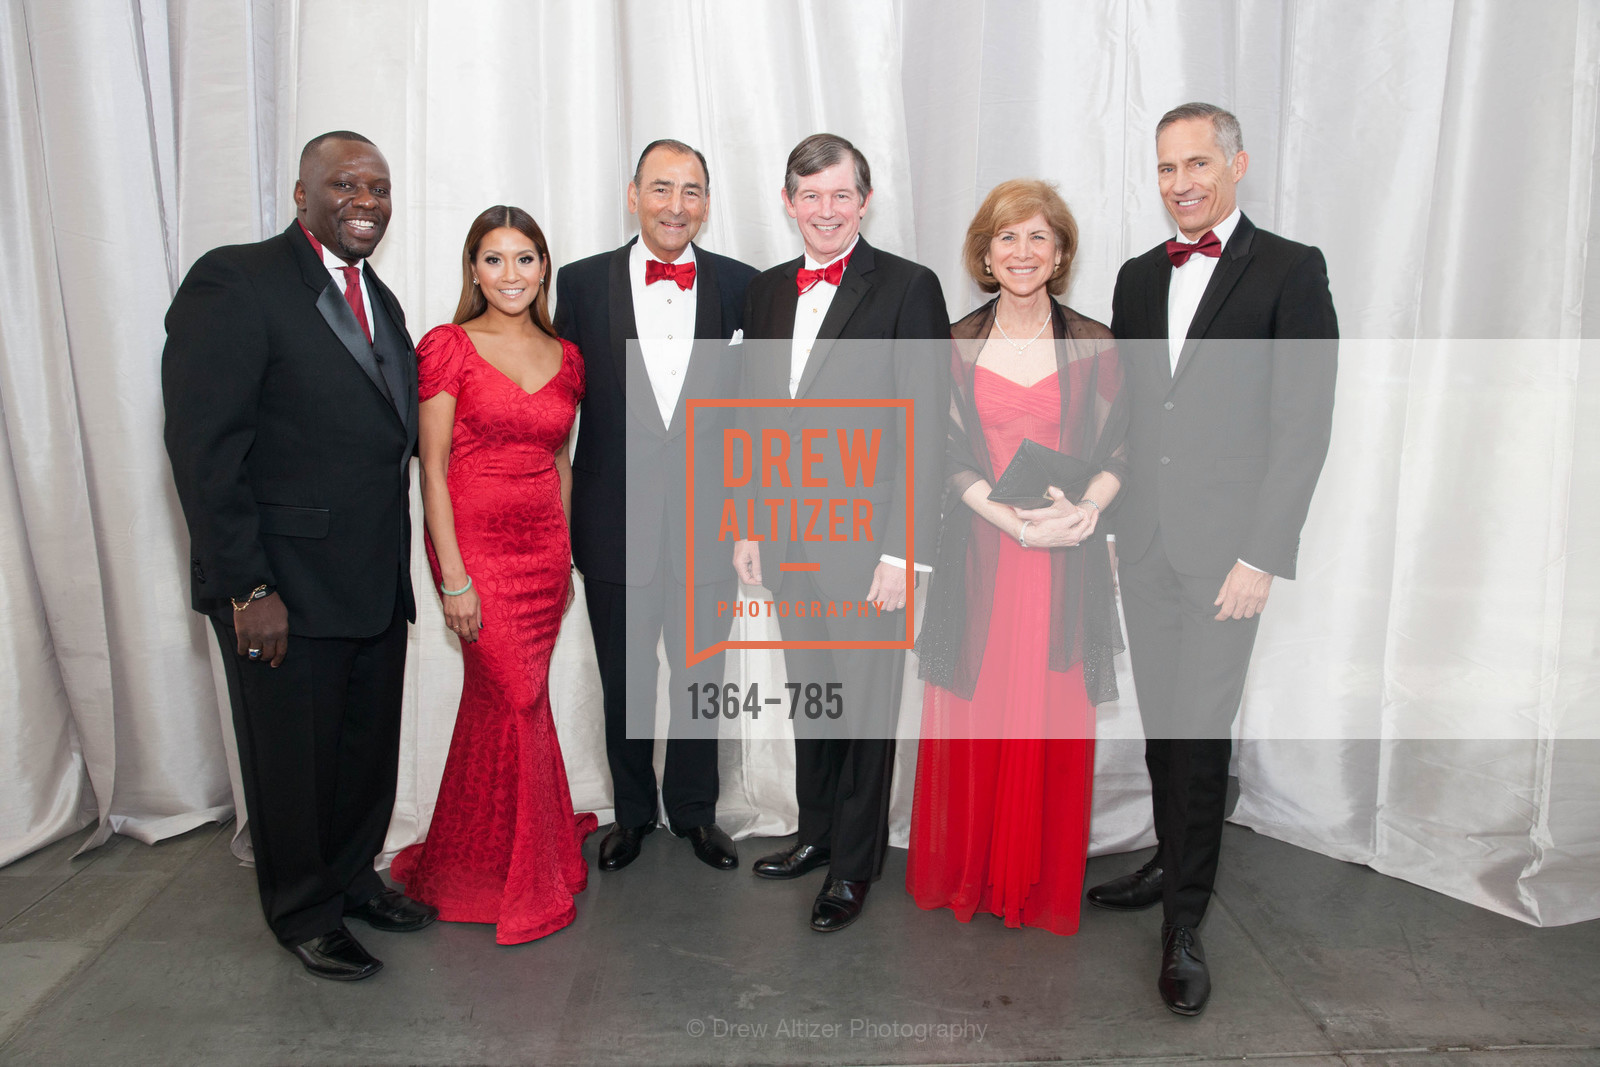 Keith White, Lillian Phan, Alexander Mehran, Anthony Earley, Gail McGovern, Mark Cloutier, 2015 RED CROSS Gala, US, April 11th, 2015,Drew Altizer, Drew Altizer Photography, full-service agency, private events, San Francisco photographer, photographer california